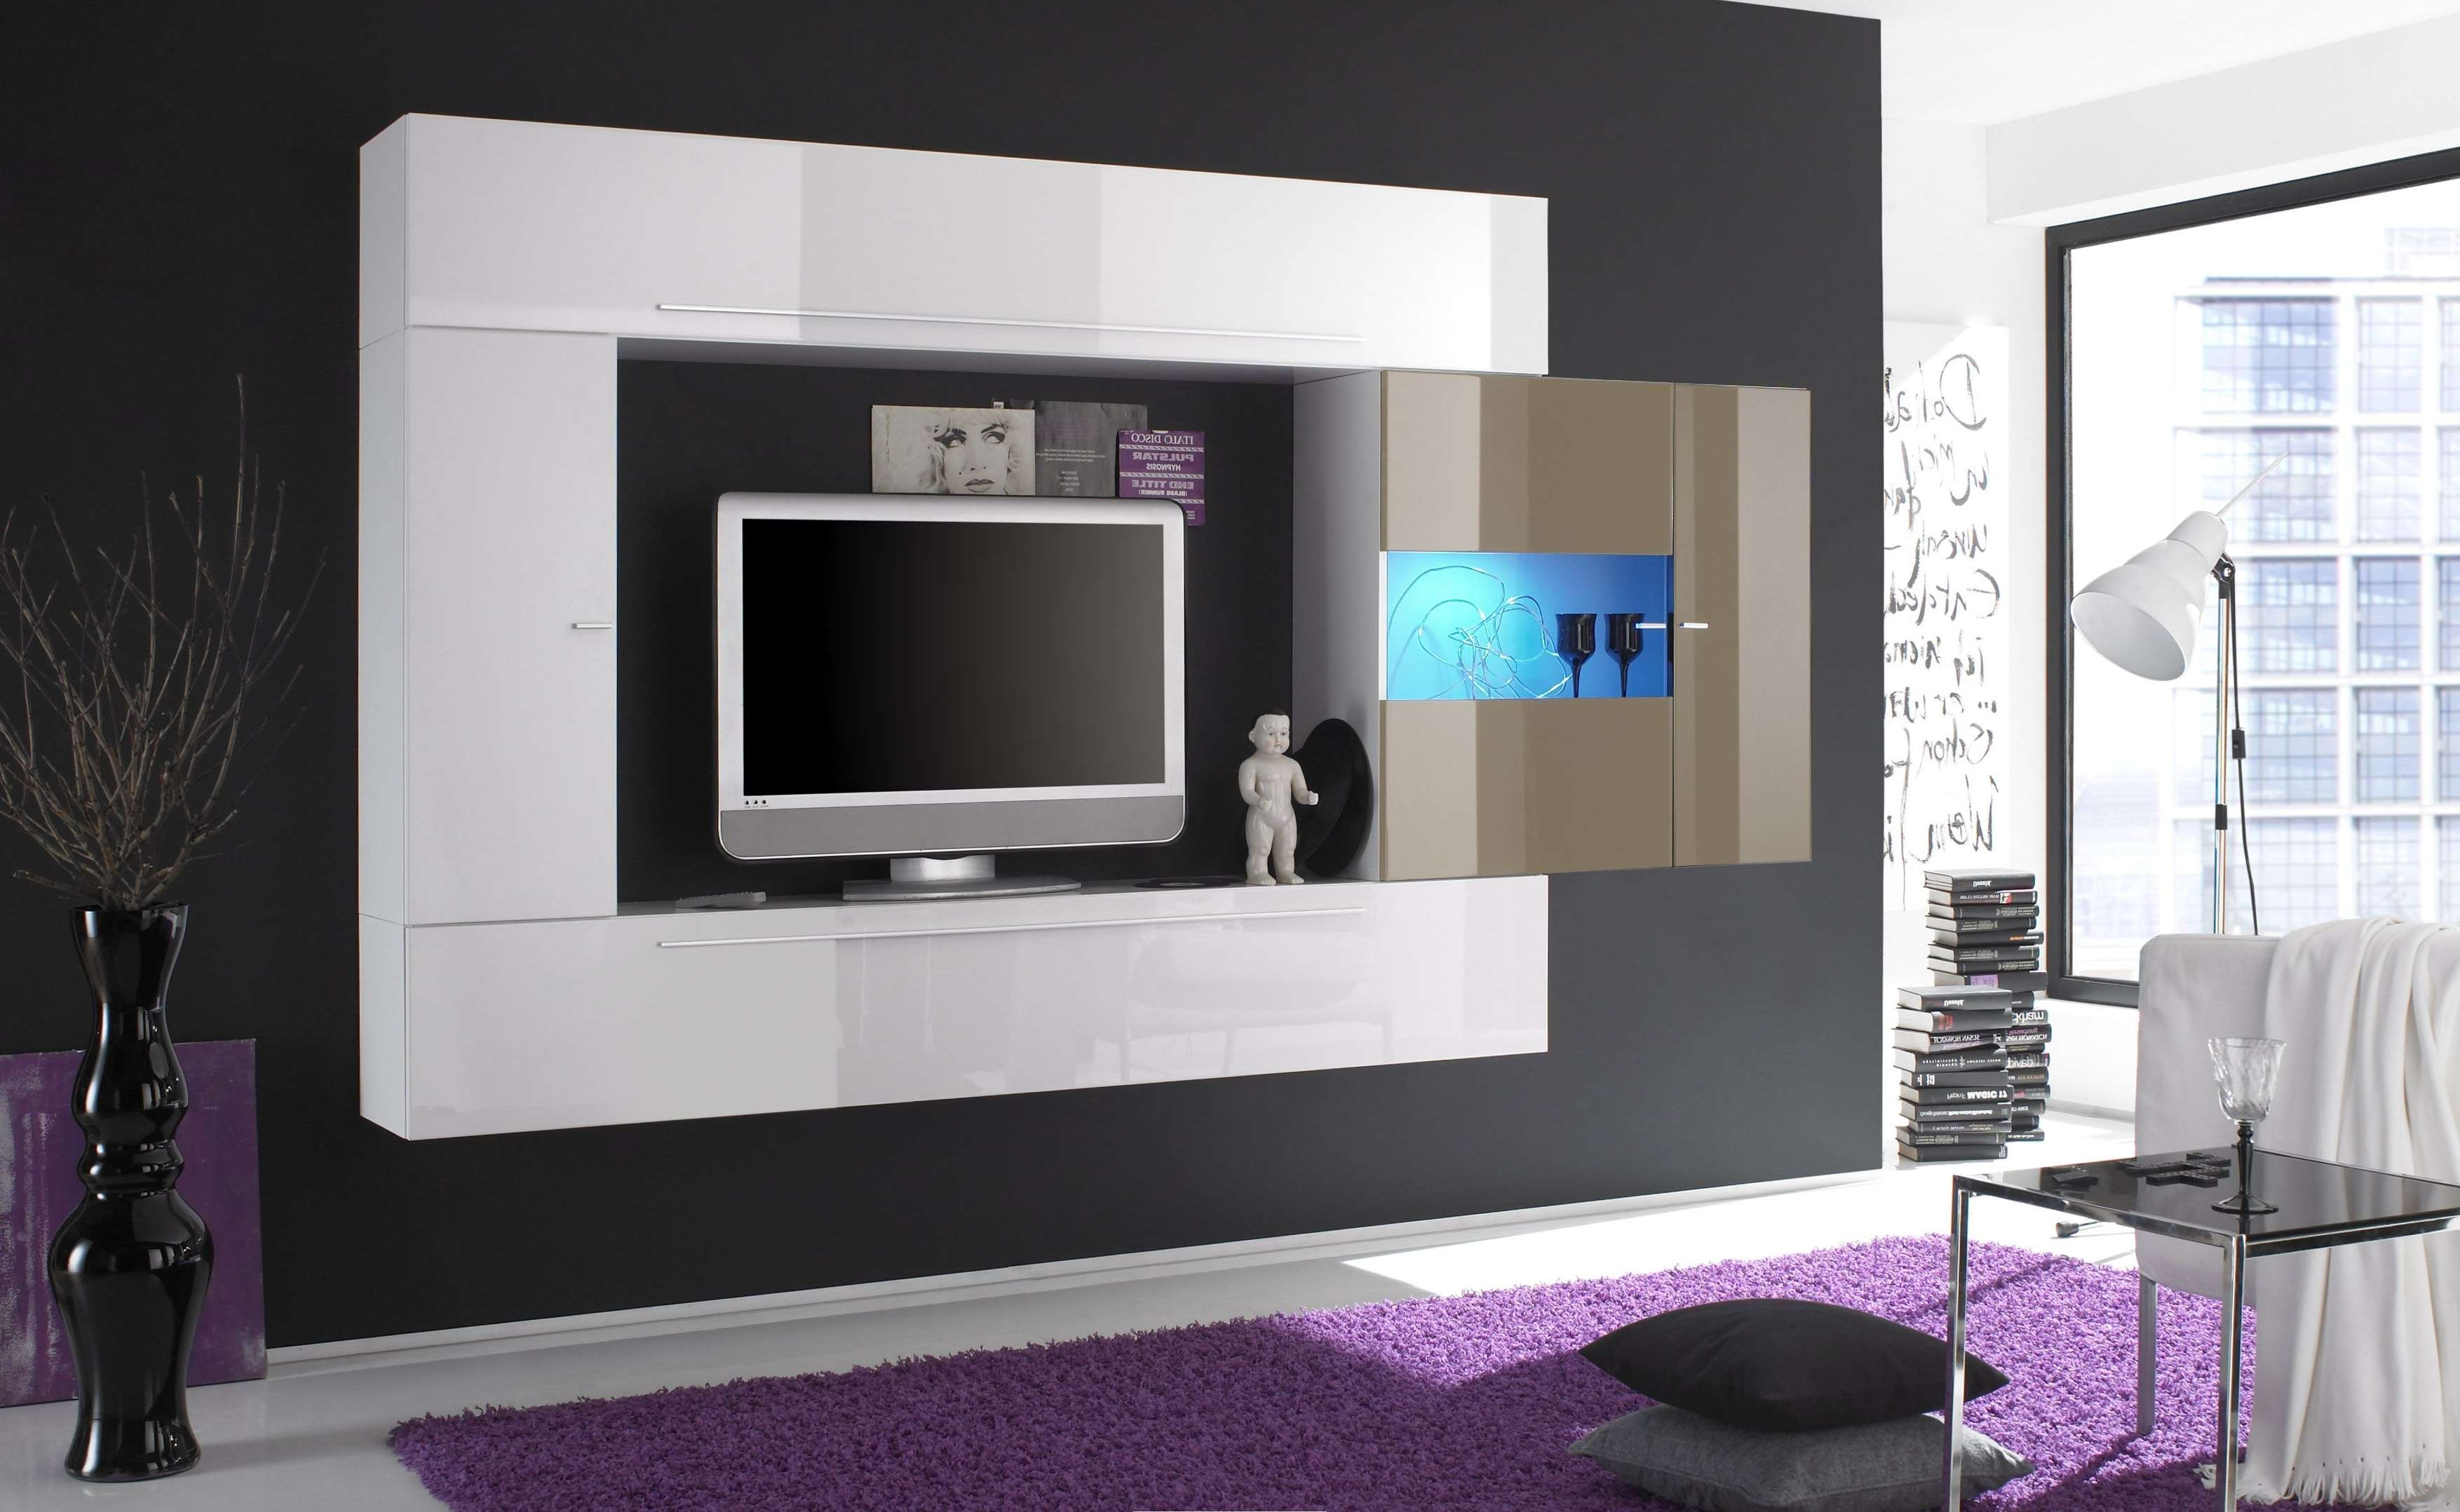 Home Decor : Wall Mounted Flat Screen Tv Cabinet Grey Bathroom Inside Wall Mounted Tv Cabinets For Flat Screens (View 19 of 20)